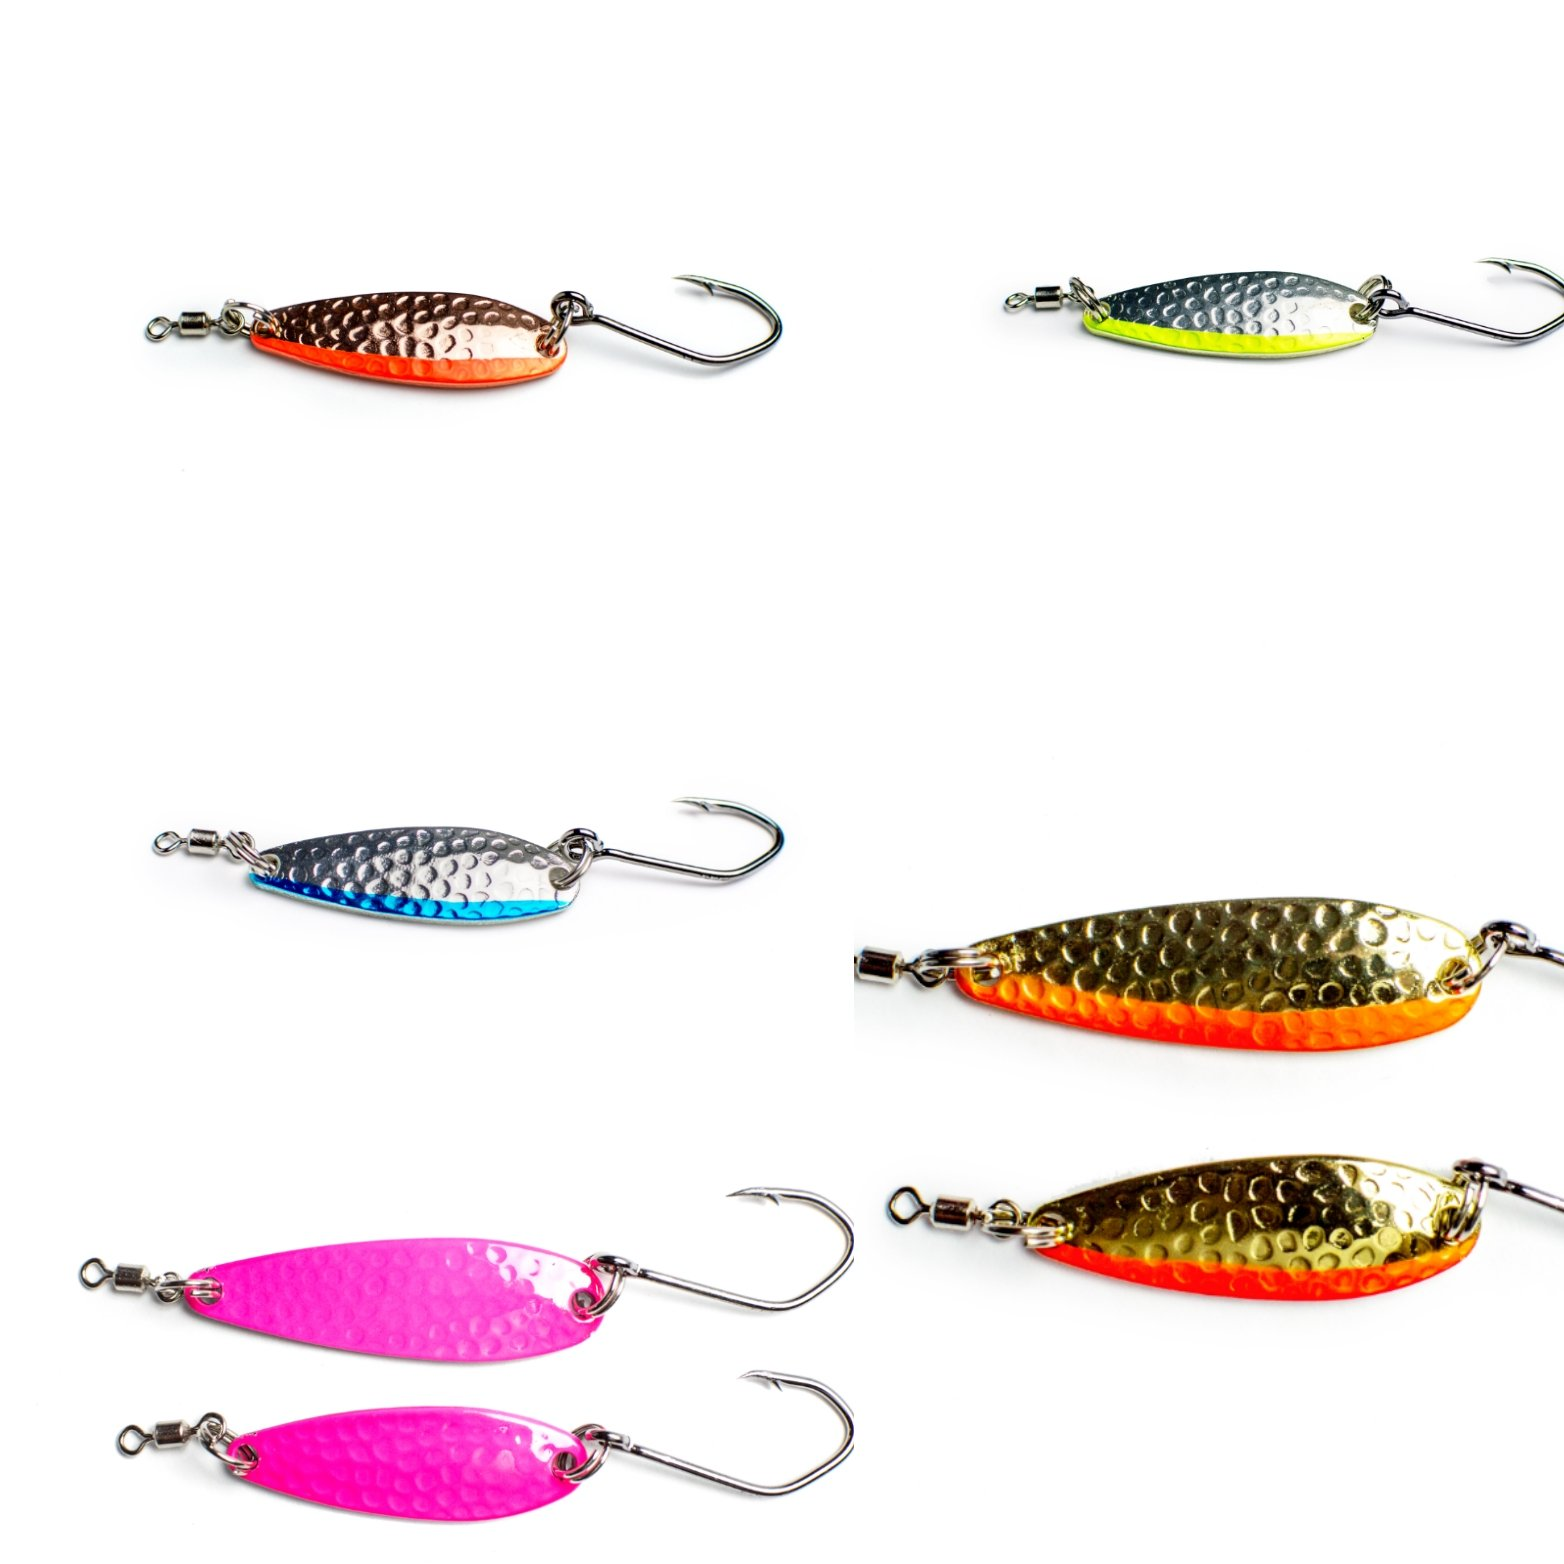 Prime Lures Chrome Candy Fishing Spoons UV Pink Slim (Pink, 1/2oz) by Prime Lures